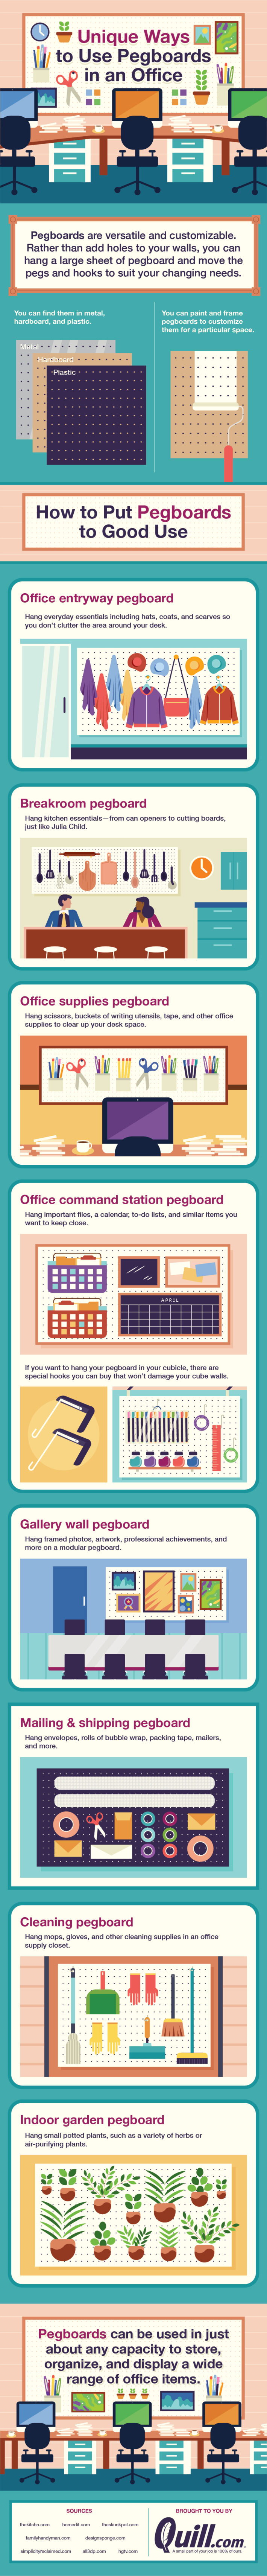 Unique ways to use pegboards in an office